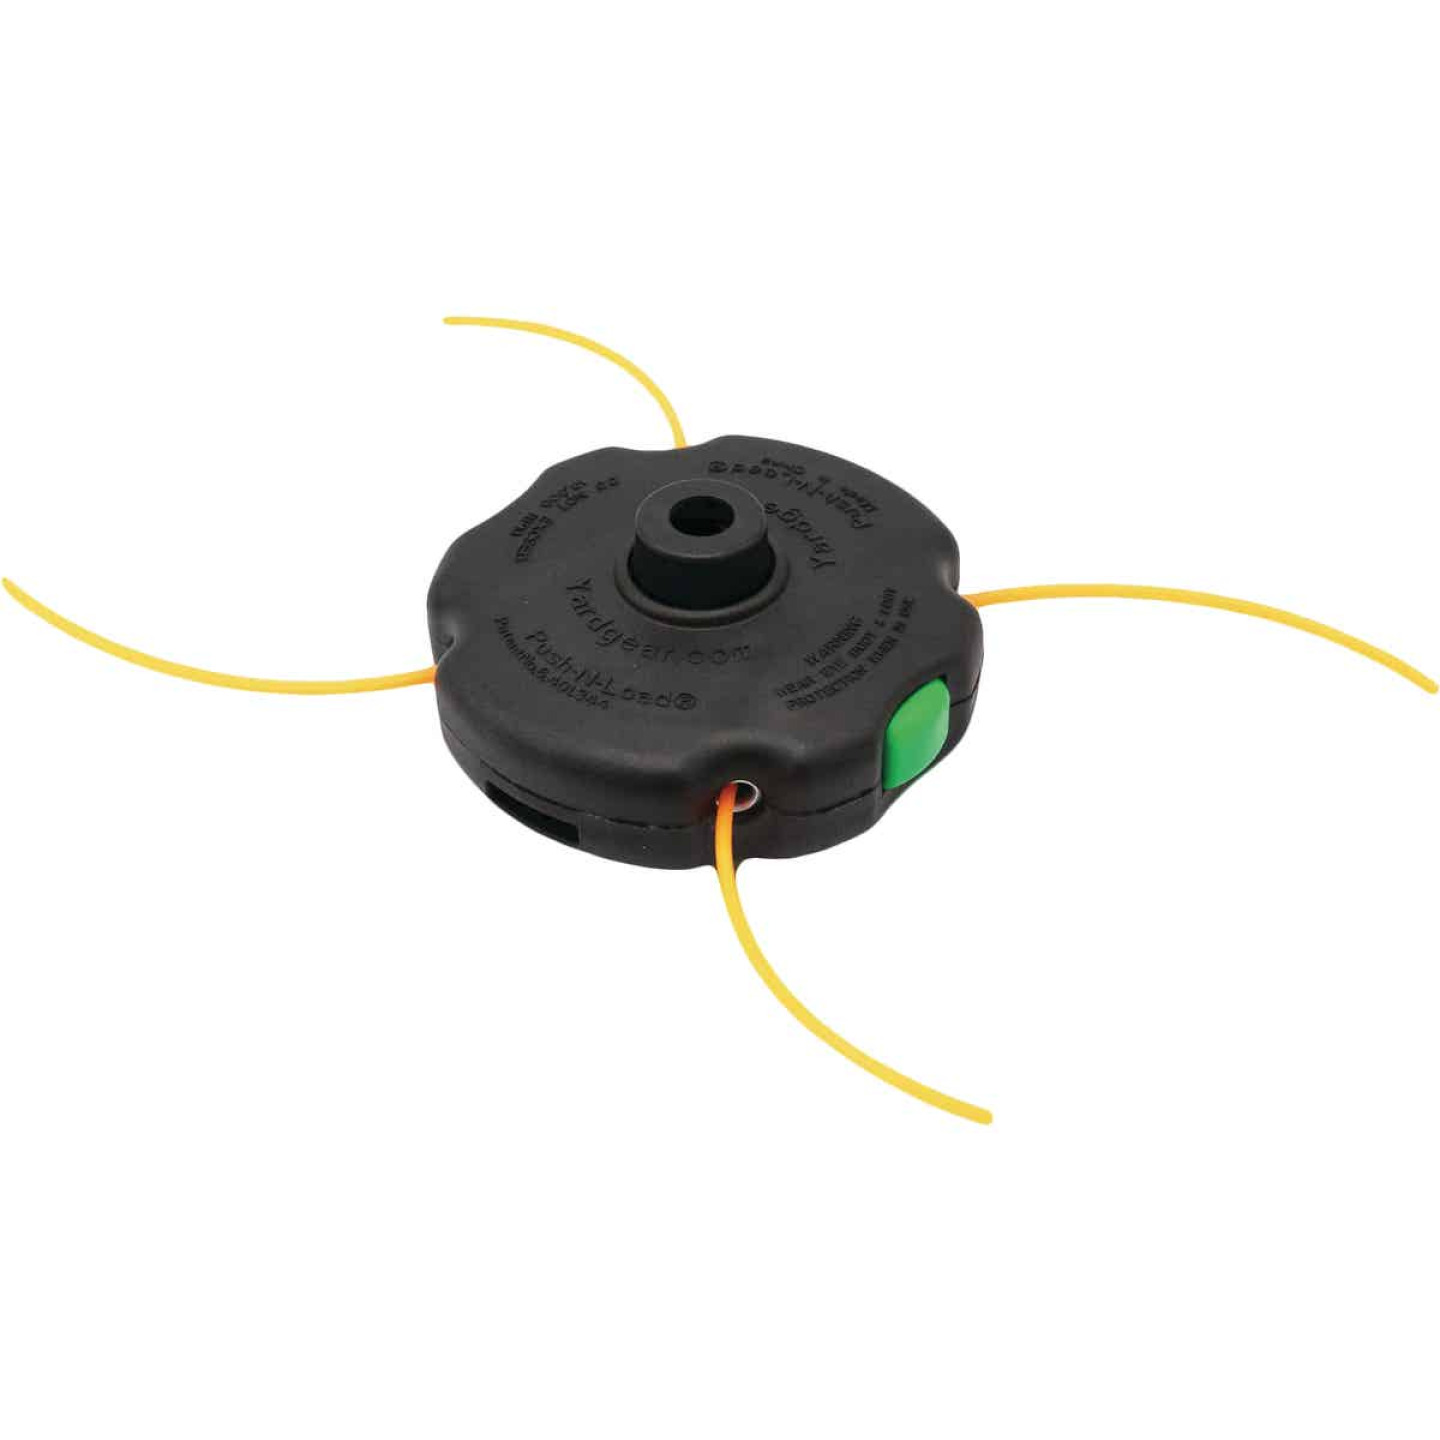 Shakespeare Push-N-Load 4-Line Replacement Trimmer Head Image 1